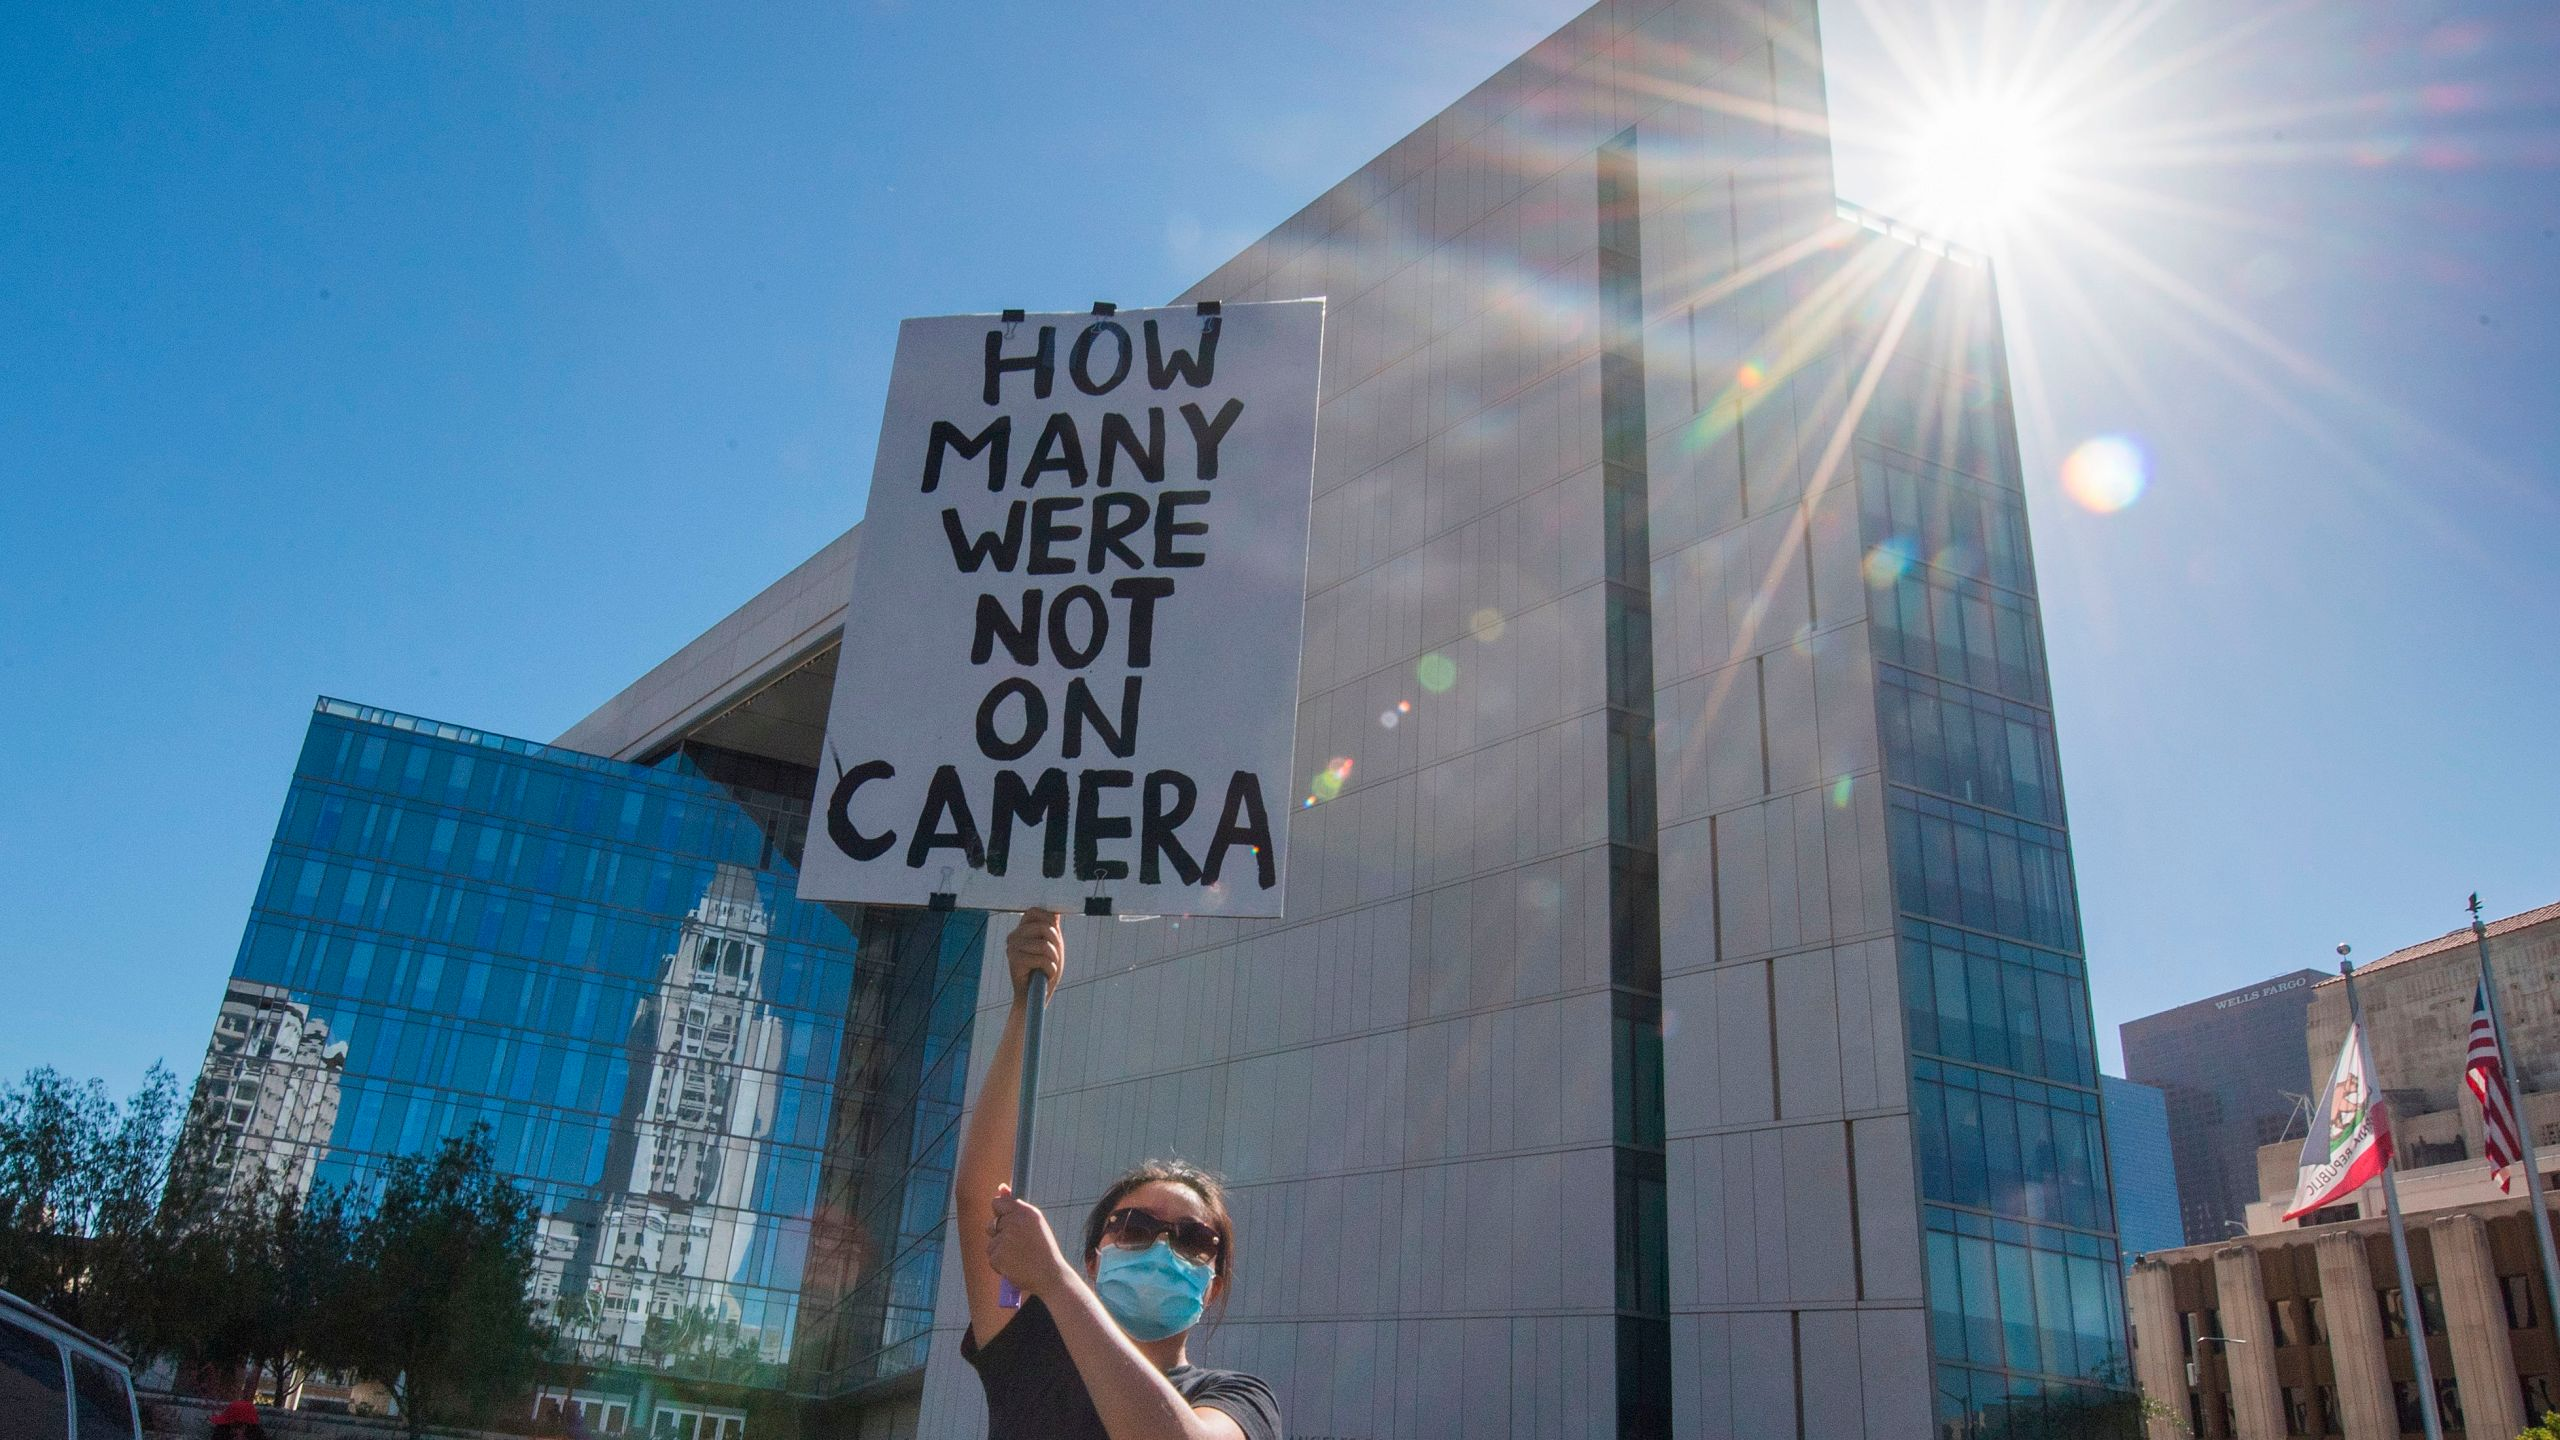 A supporter of Black Lives Matter holds a protest sign outside the Los Angeles Police Department headquarters on June 7, 2020. (MARK RALSTON/AFP via Getty Images)